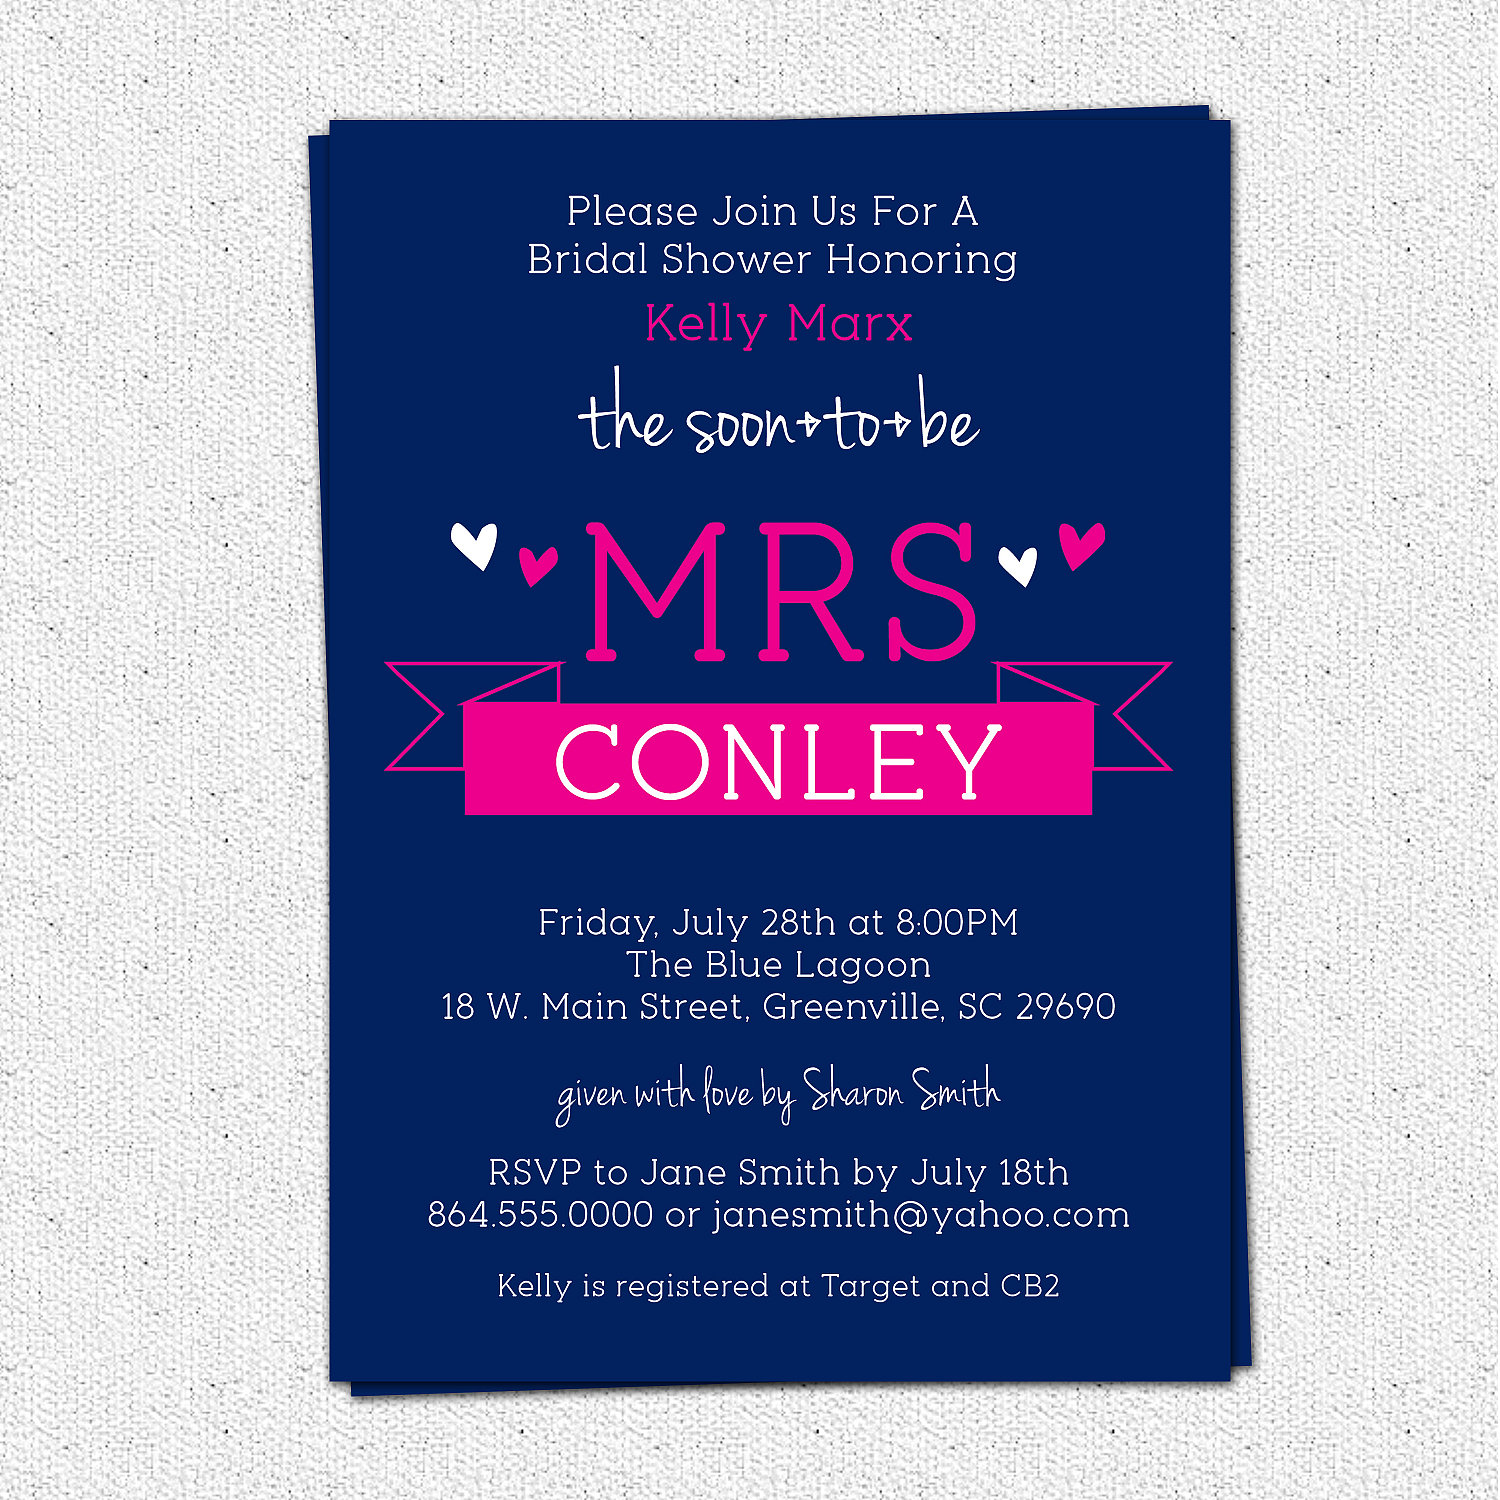 Bridal shower invitations soon to be mrs sweet banner pick your bridal shower invitations soon to be mrs sweet banner pick your color custom filmwisefo